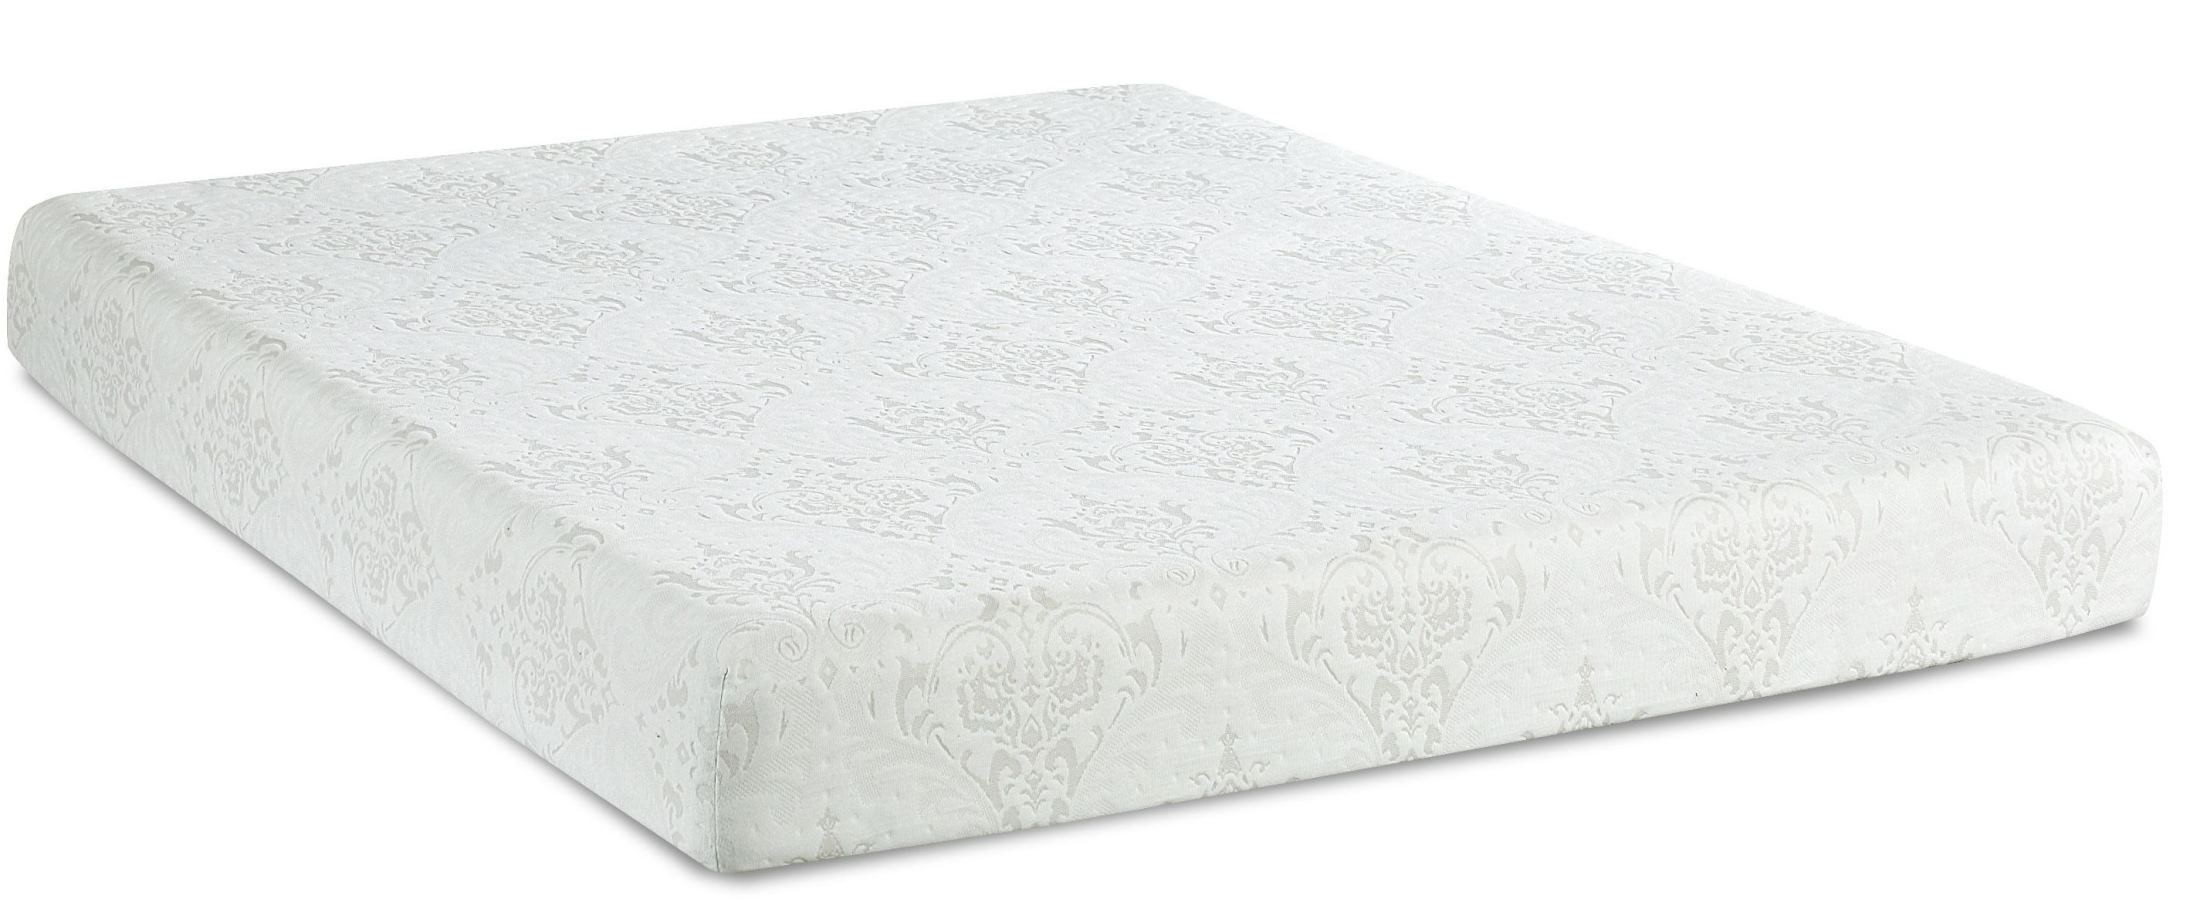 Hampton 8 Memory Foam Twin Mattress From Klaussner Hamptonttmat Coleman Furniture